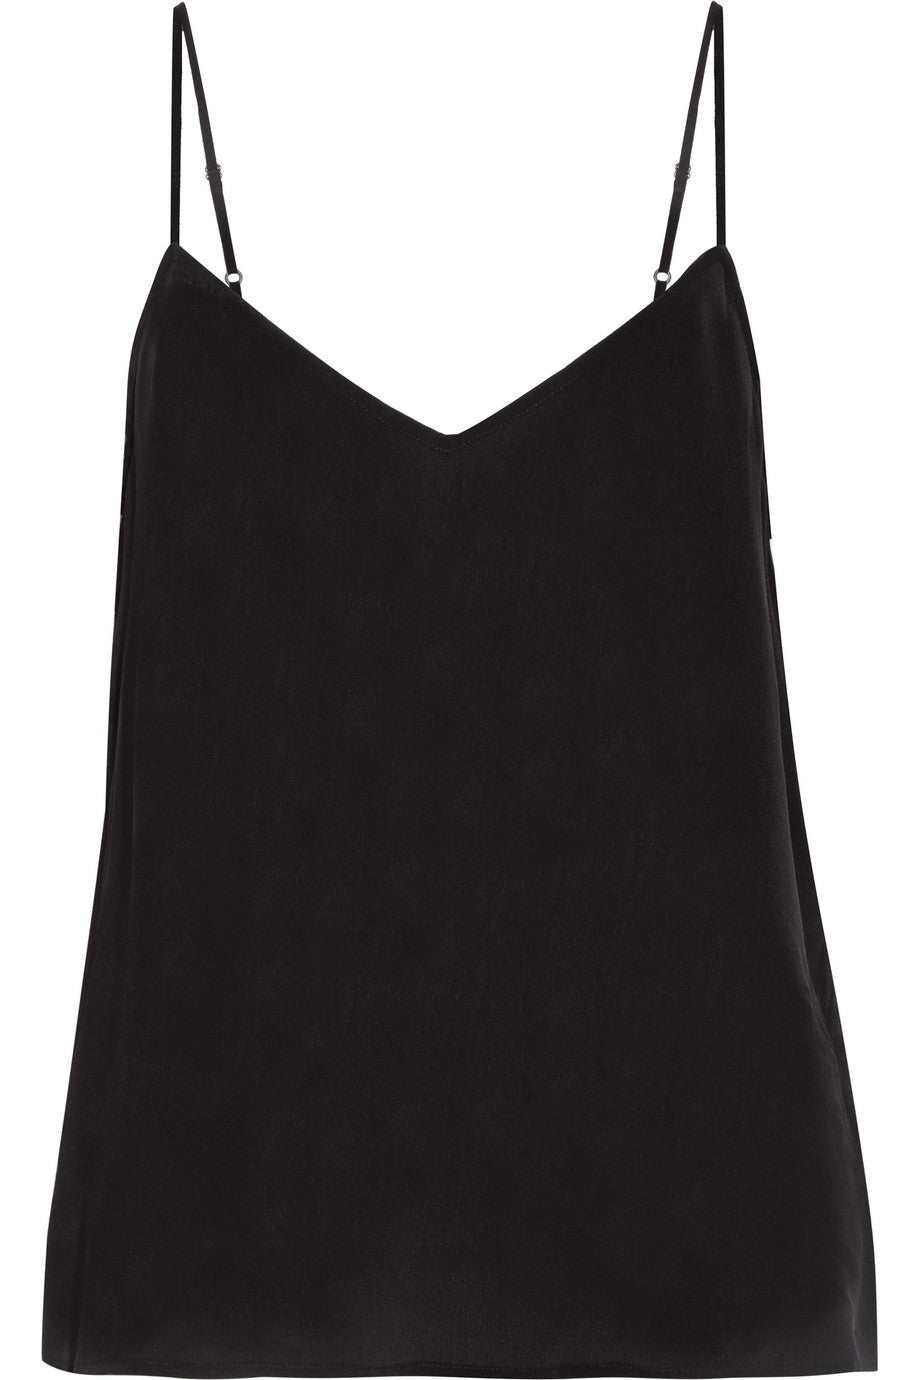 Equipment - Layla black silk camisole top featured in Capsule Wardrobe blog post on ownmuse.com